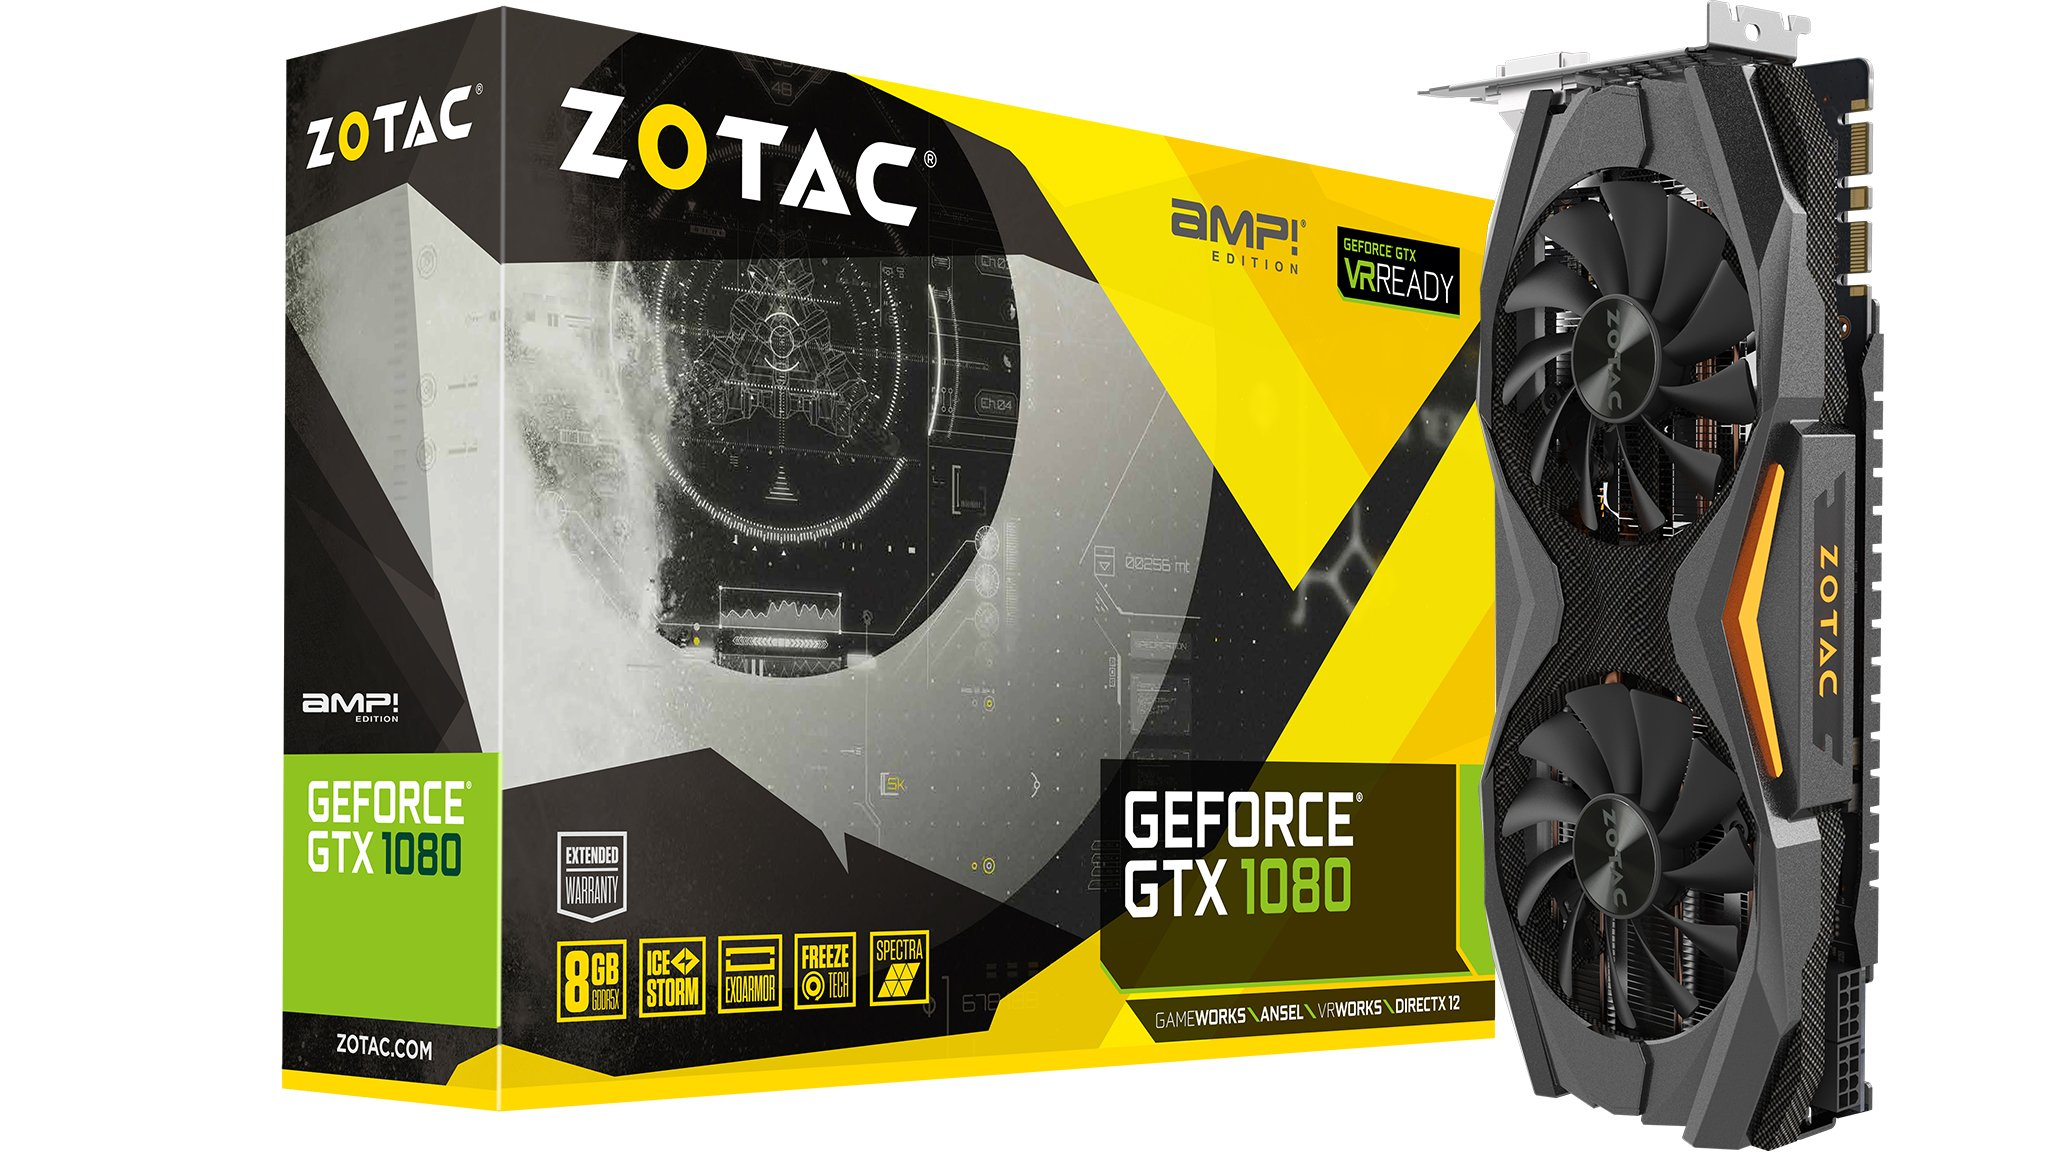 ZOTAC GeForce GTX 1080 AMP! Edition, ZT-P10800C-10P, 8GB GDDR5X IceStorm Cooling, Metal Wraparound Carbon ExoArmor exterior, Ultra-wide 100mm Fans Gaming Graphics Card by ZOTAC